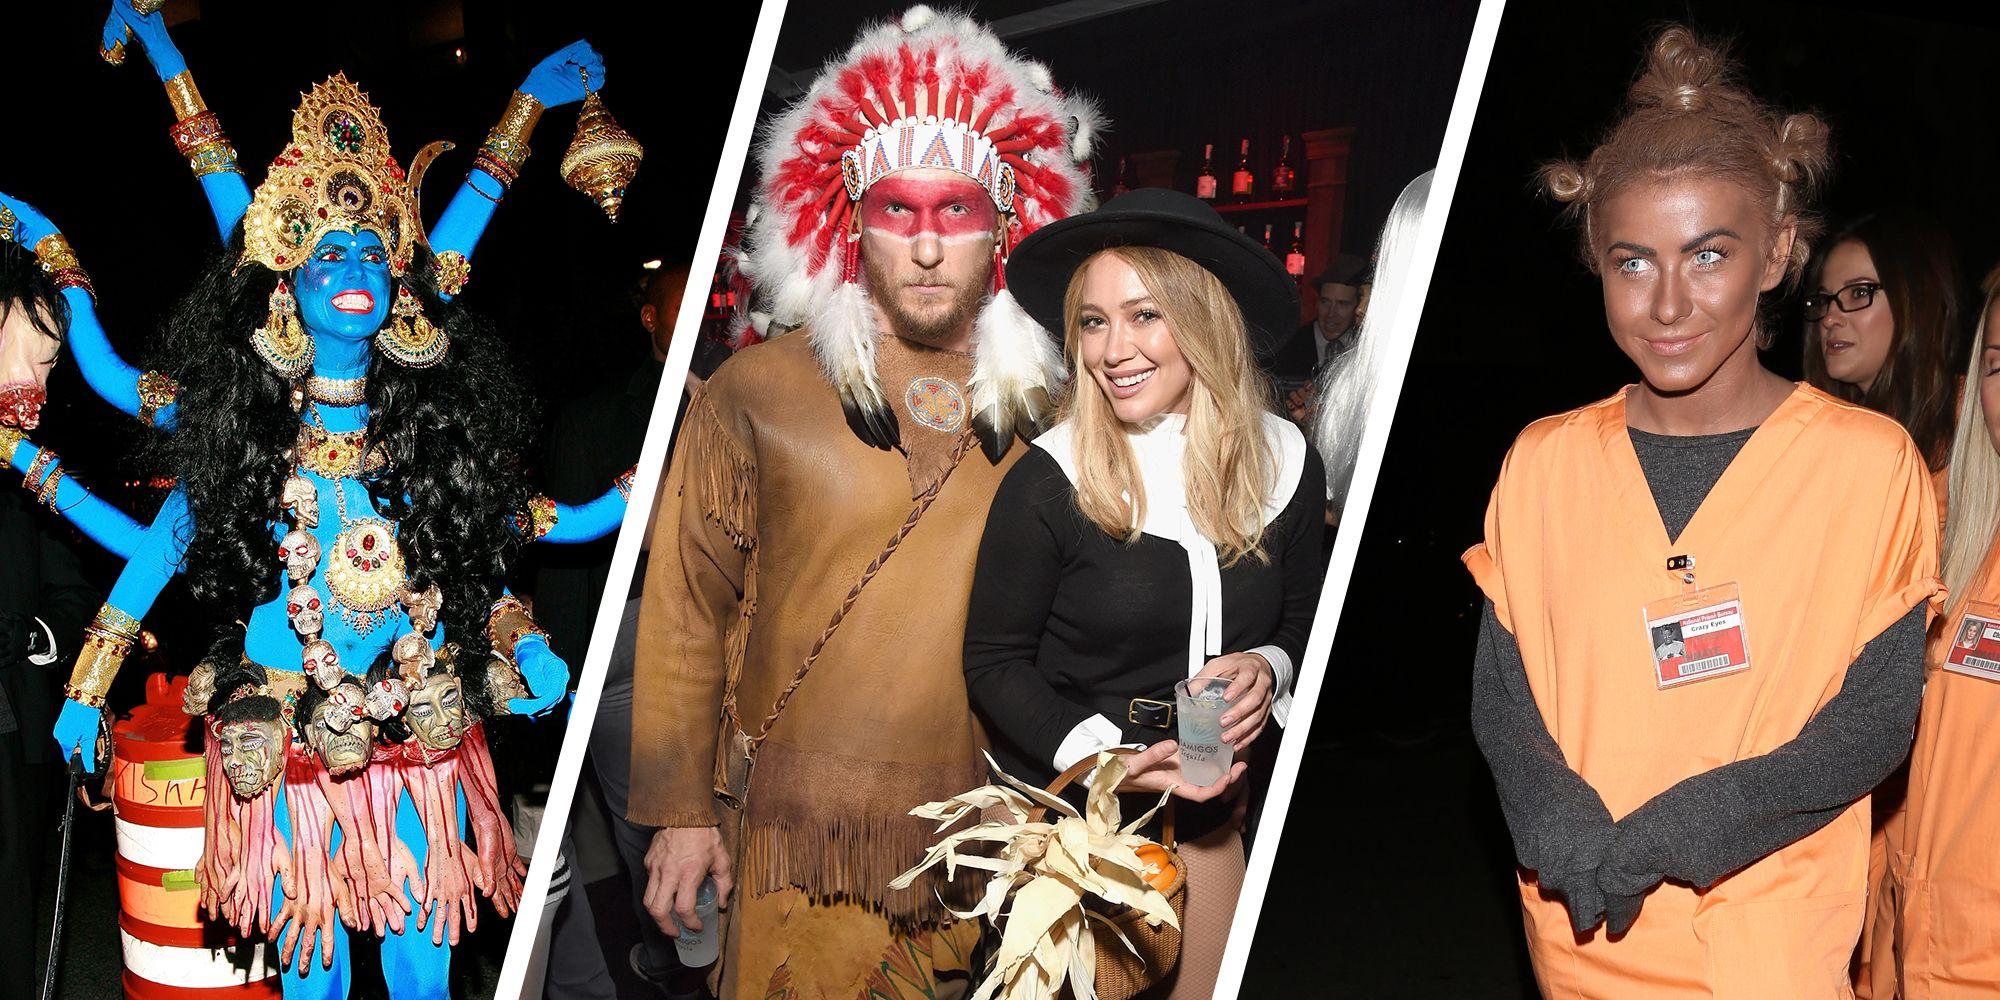 3 Ways Not To Culturally Appropriate This Halloween - Bad Halloween Costumes